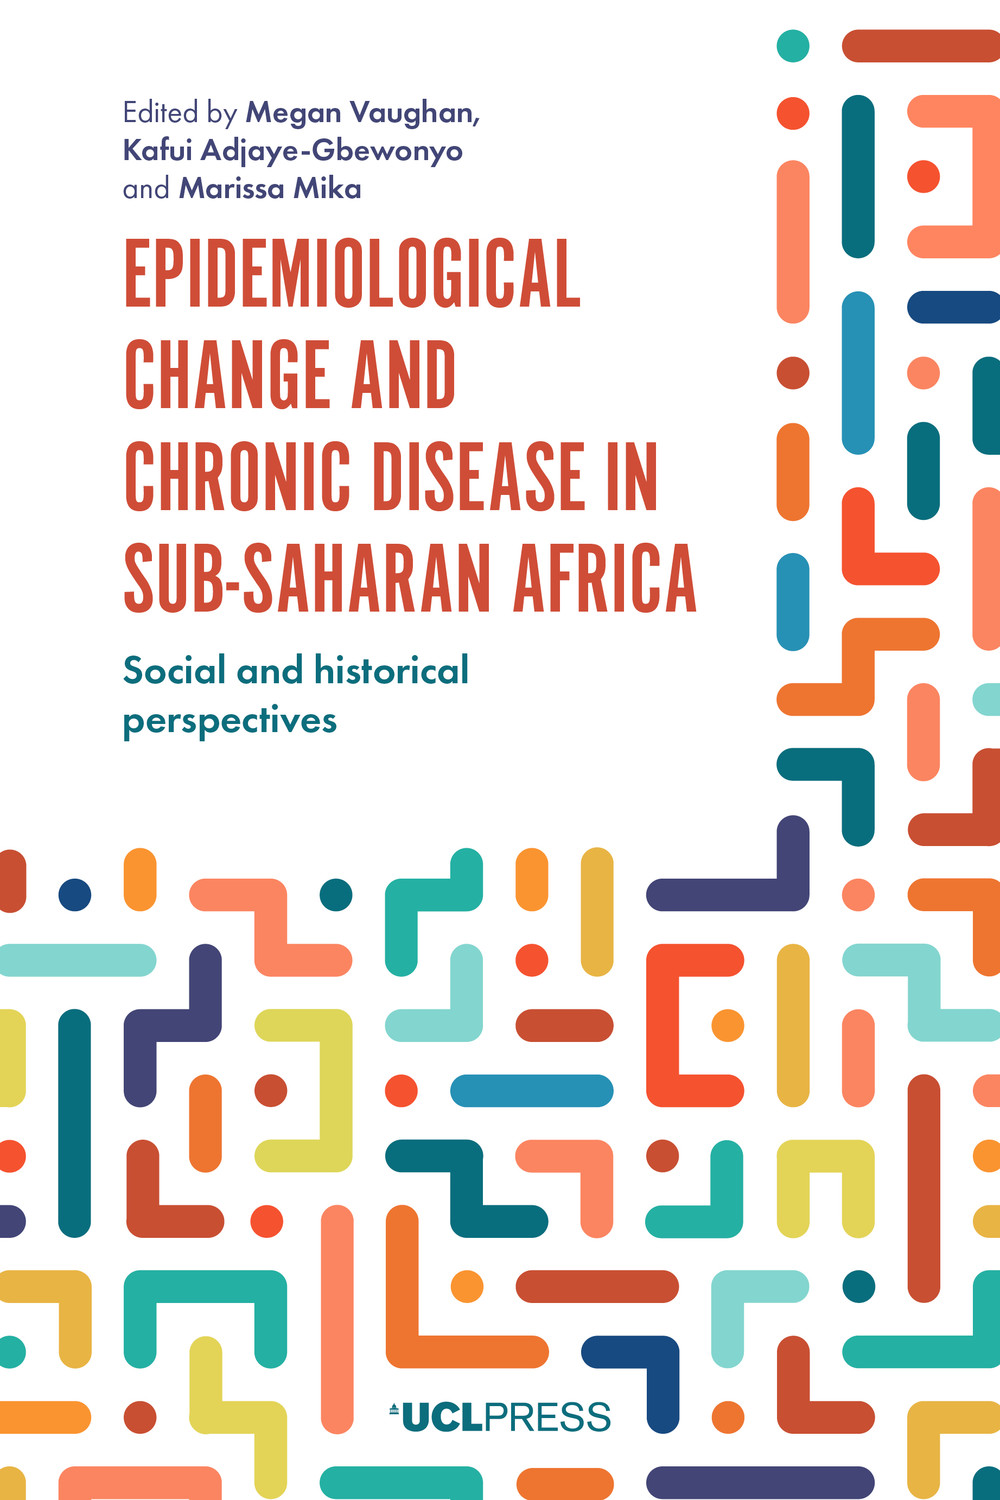 Epidemiological Change and Chronic Disease in Sub-Saharan Africa